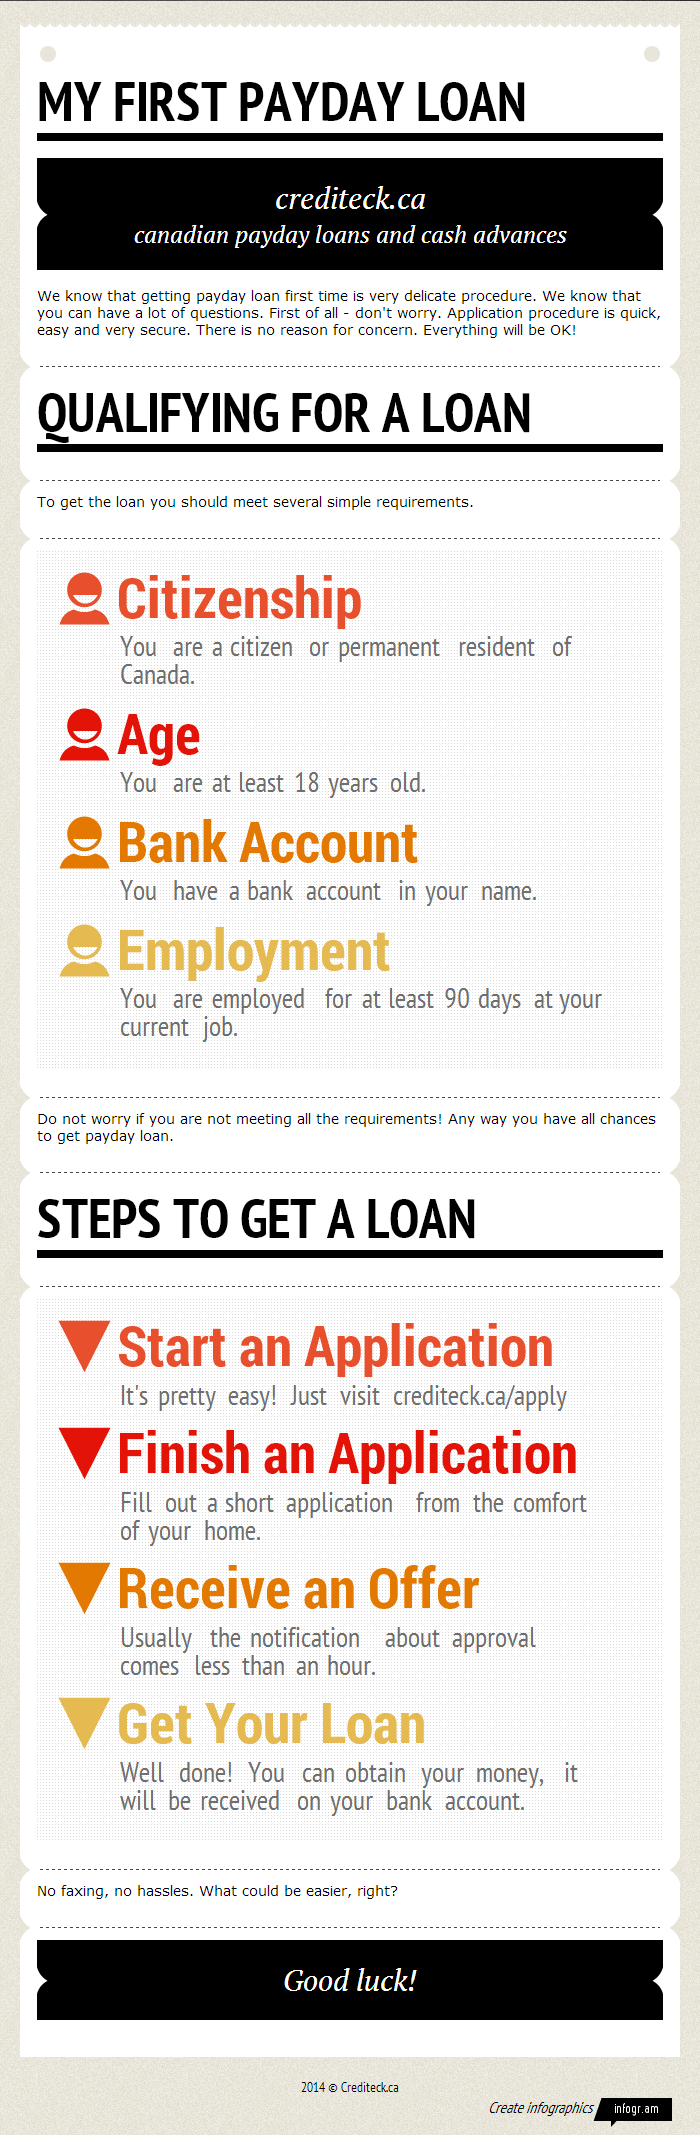 infographic - my first payday loan